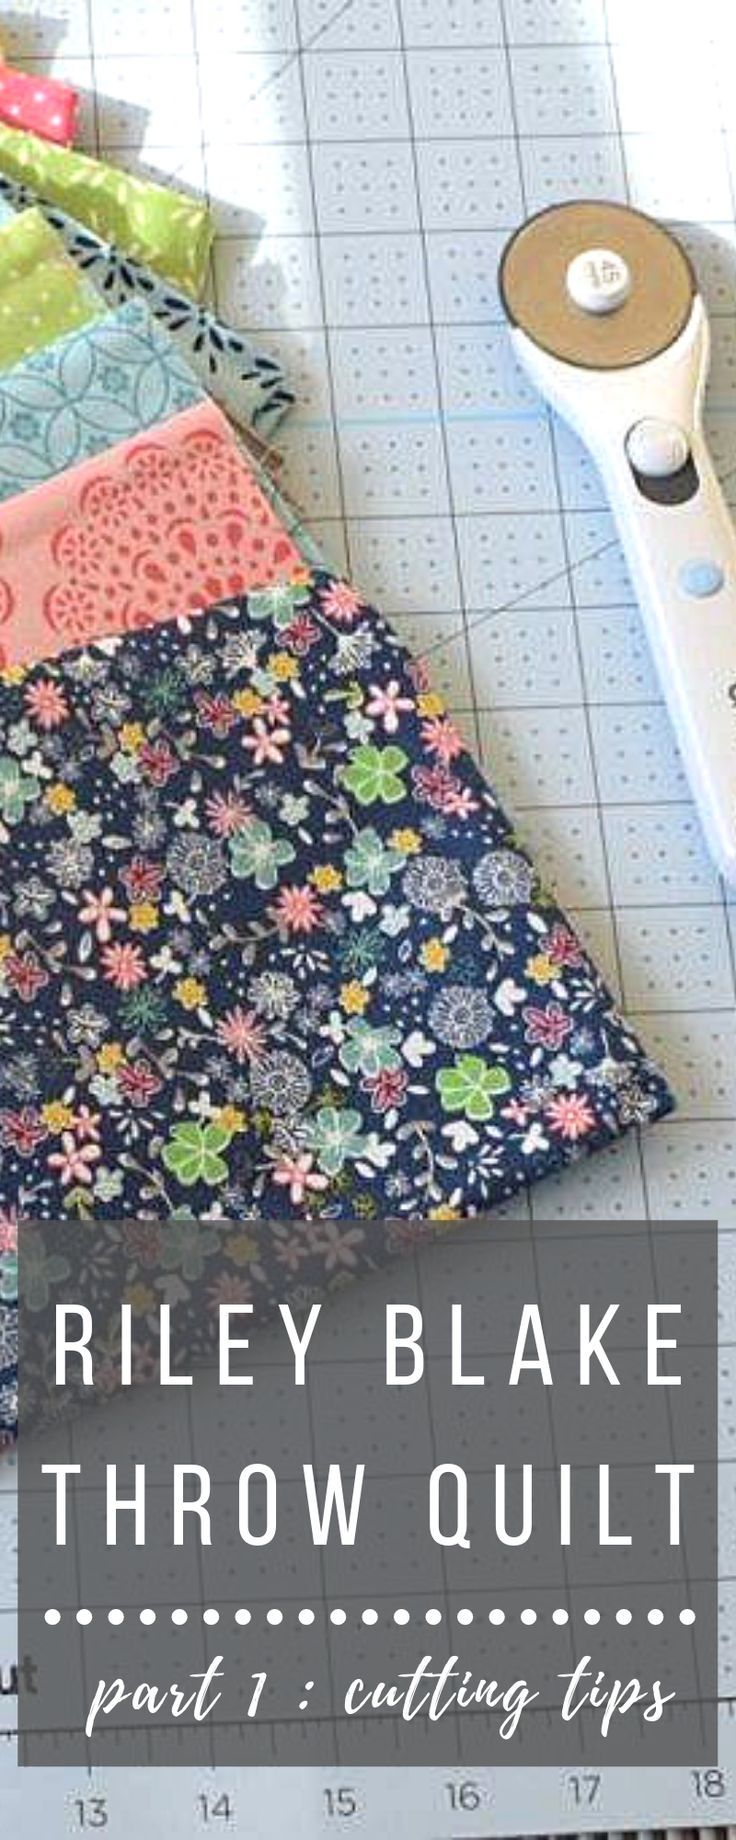 Riley Blake Throw Quilt With Cricut Part 1 Quilting Tutorials Sewing Blogs Quilts